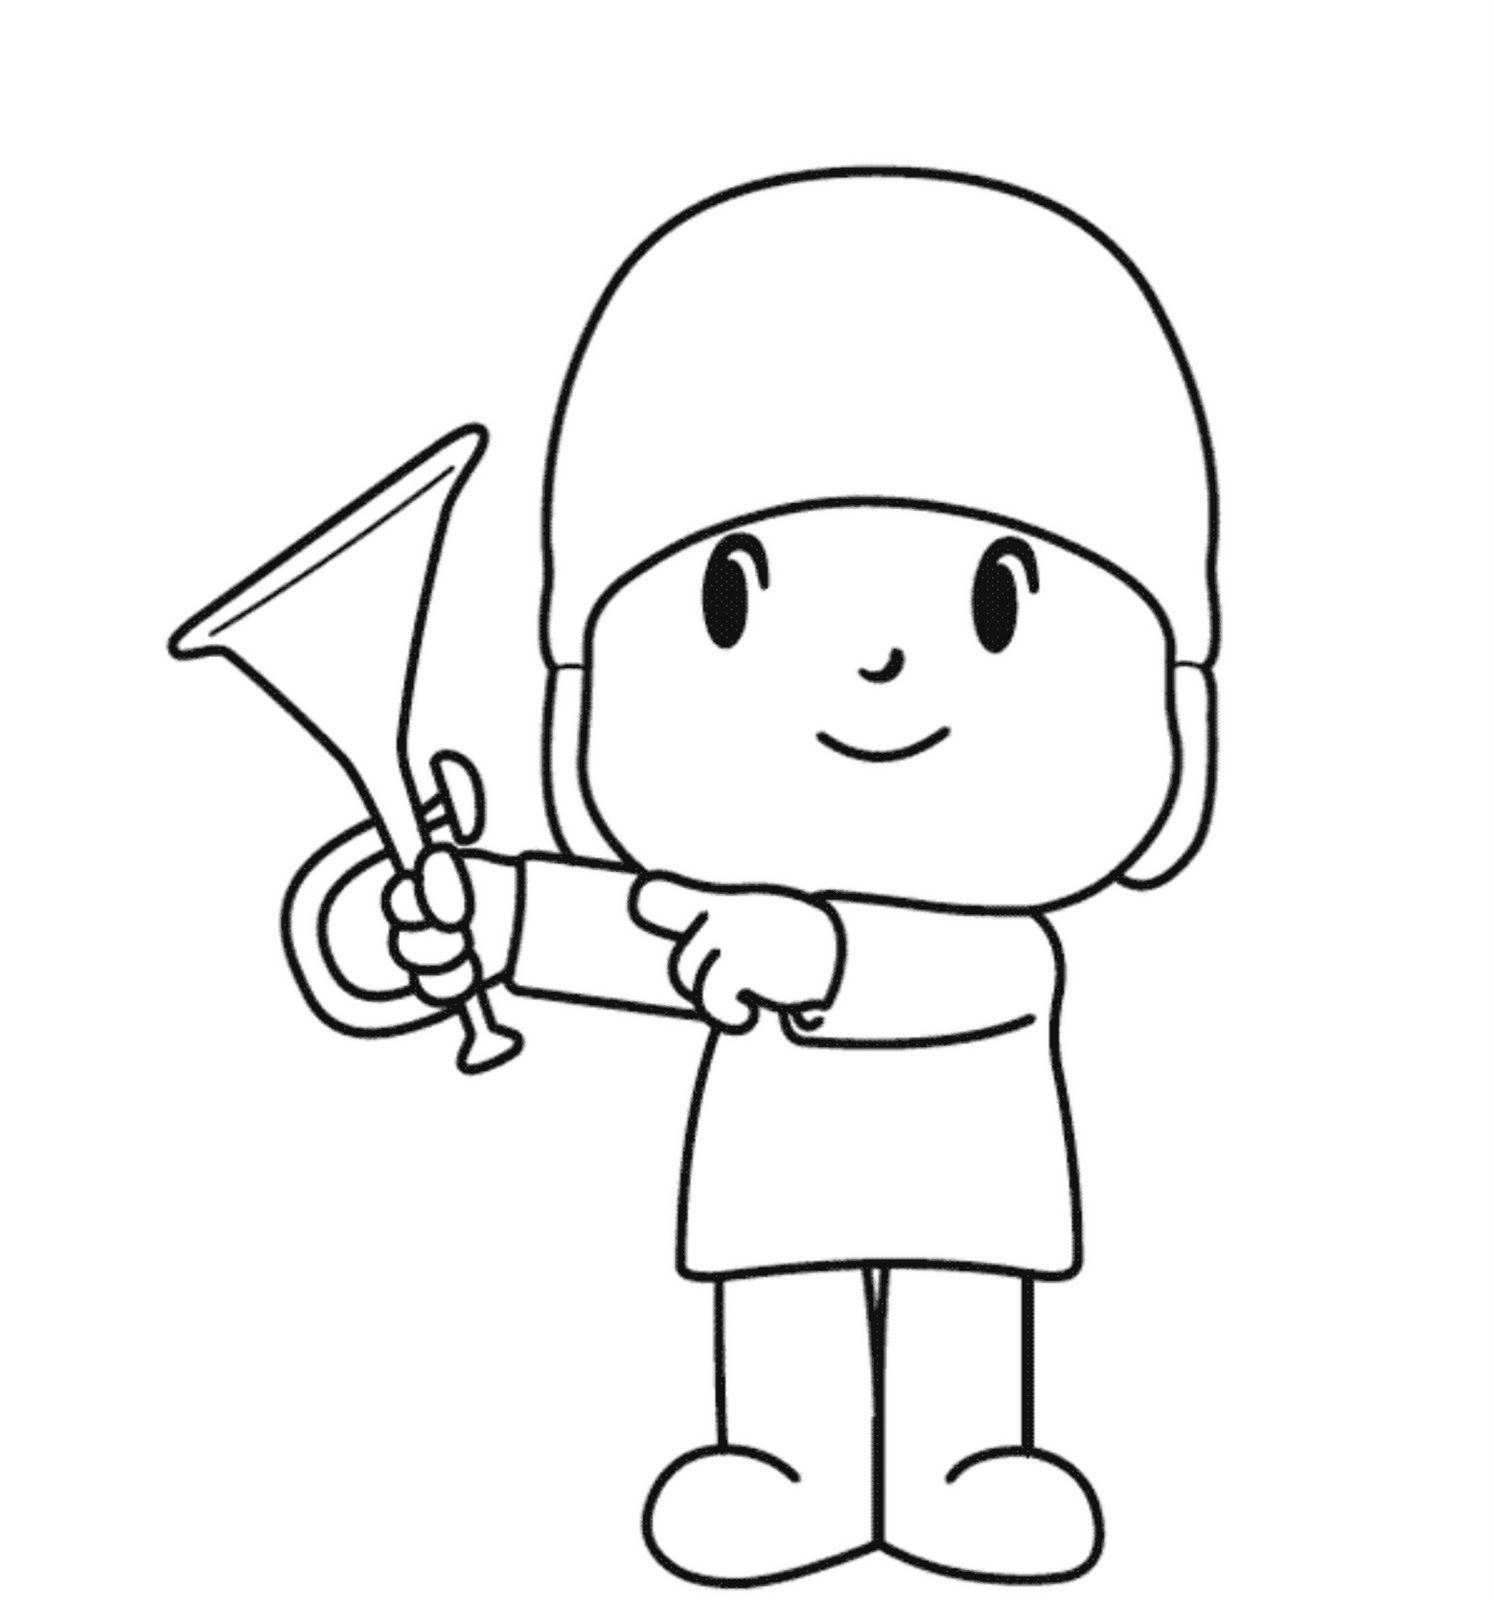 pocoyo coloring pages - photo#17